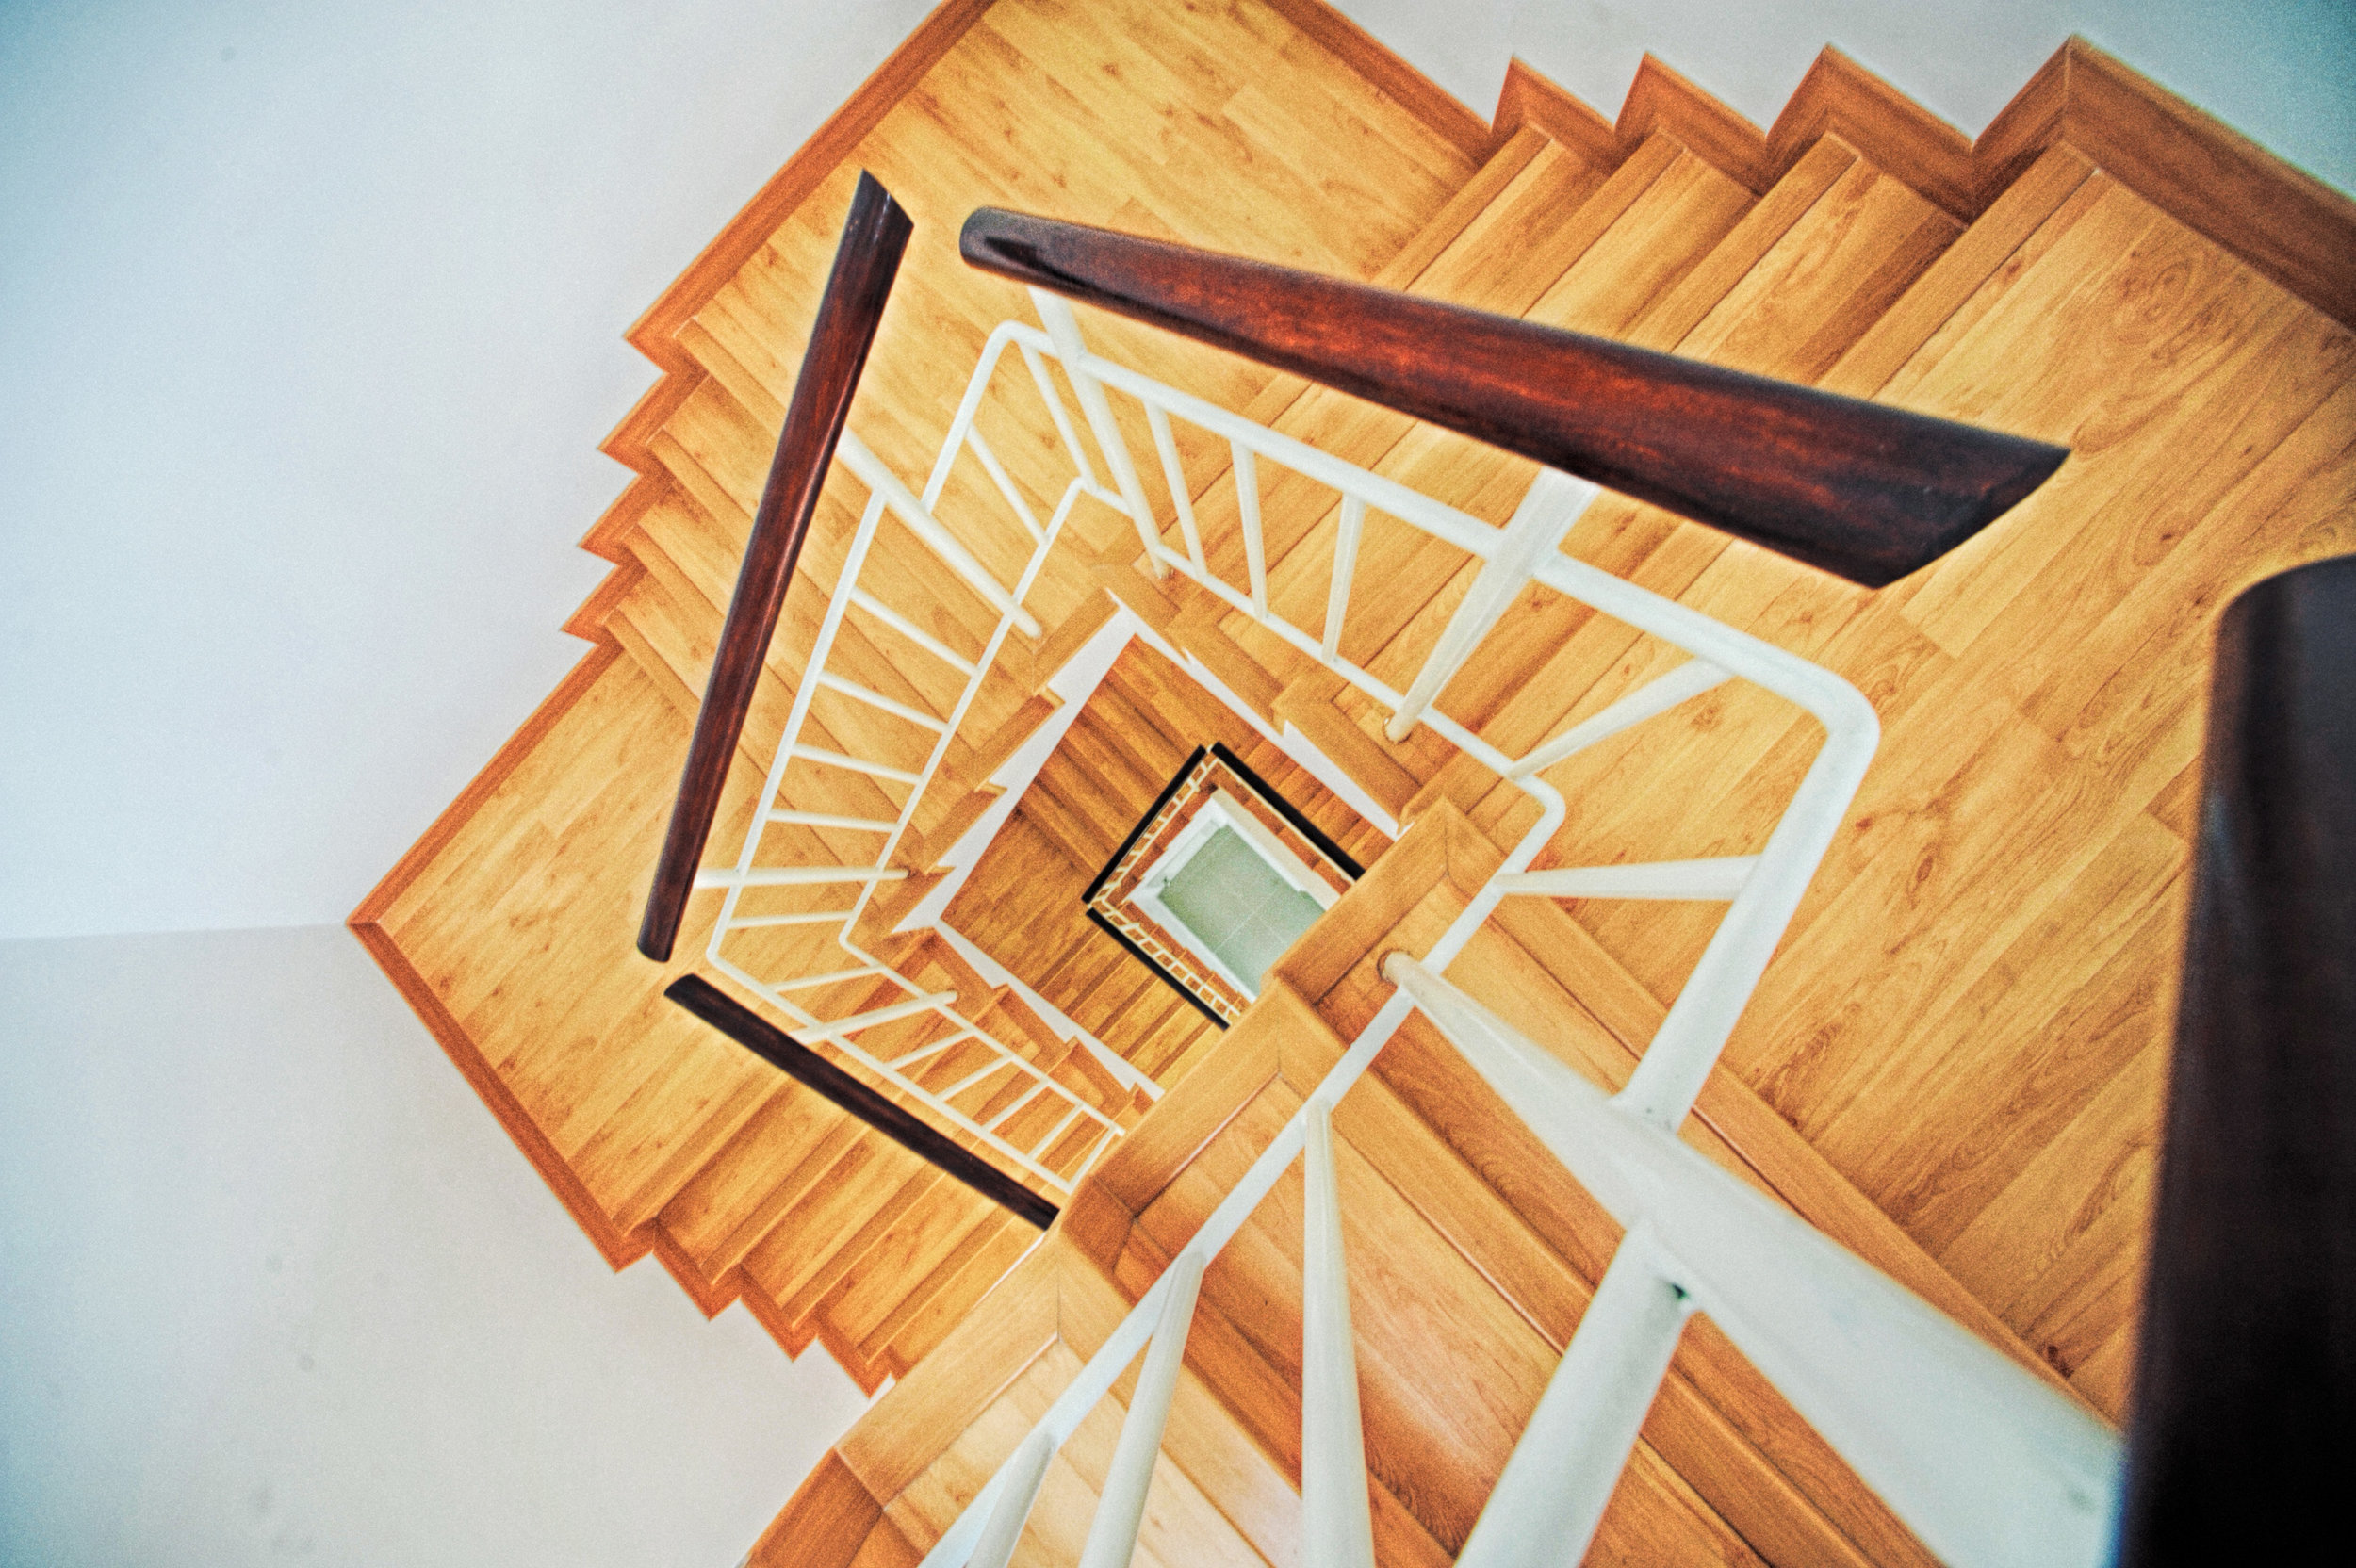 Stairs - We offer complete stair systems using either stock components or custom designed to your own personal specifications.-Handrails-Risers-Treads-Newel-Balusters-Landings & Platforms